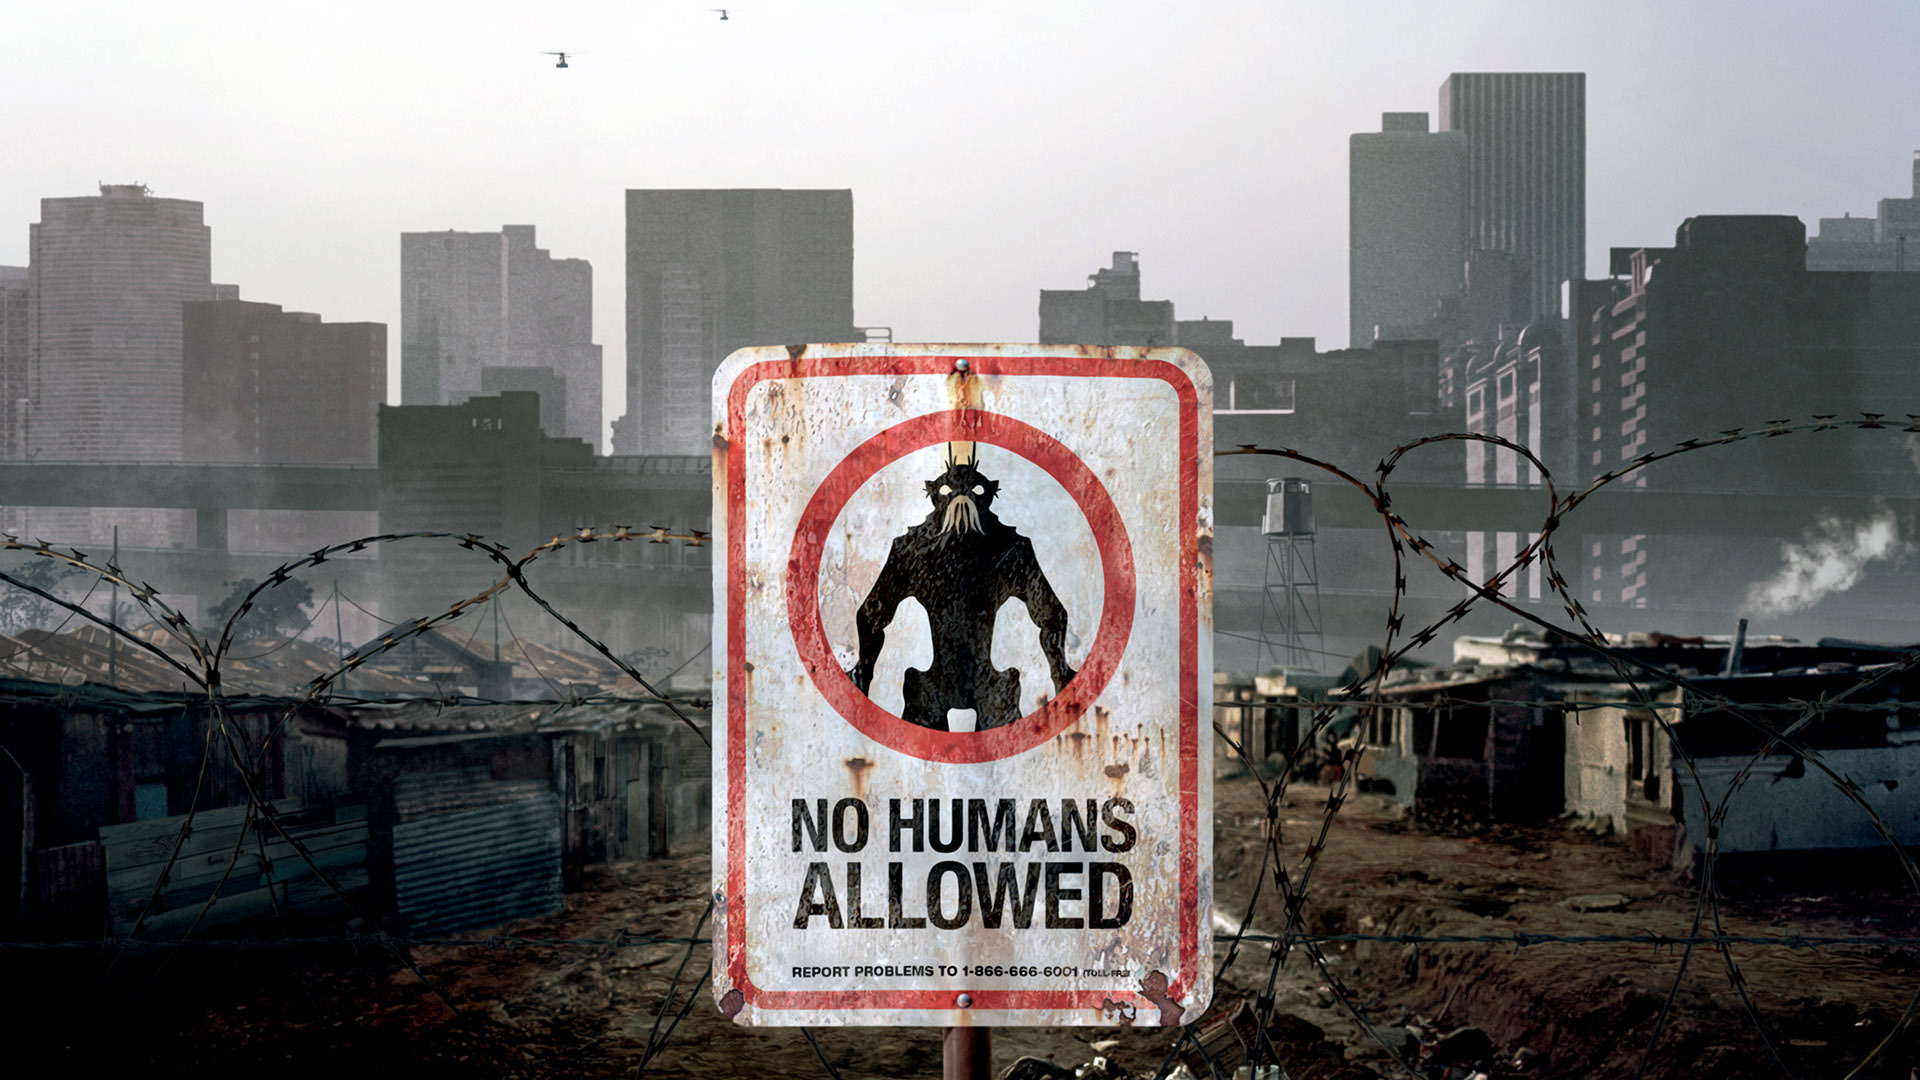 District 9: Inventamos una historia.